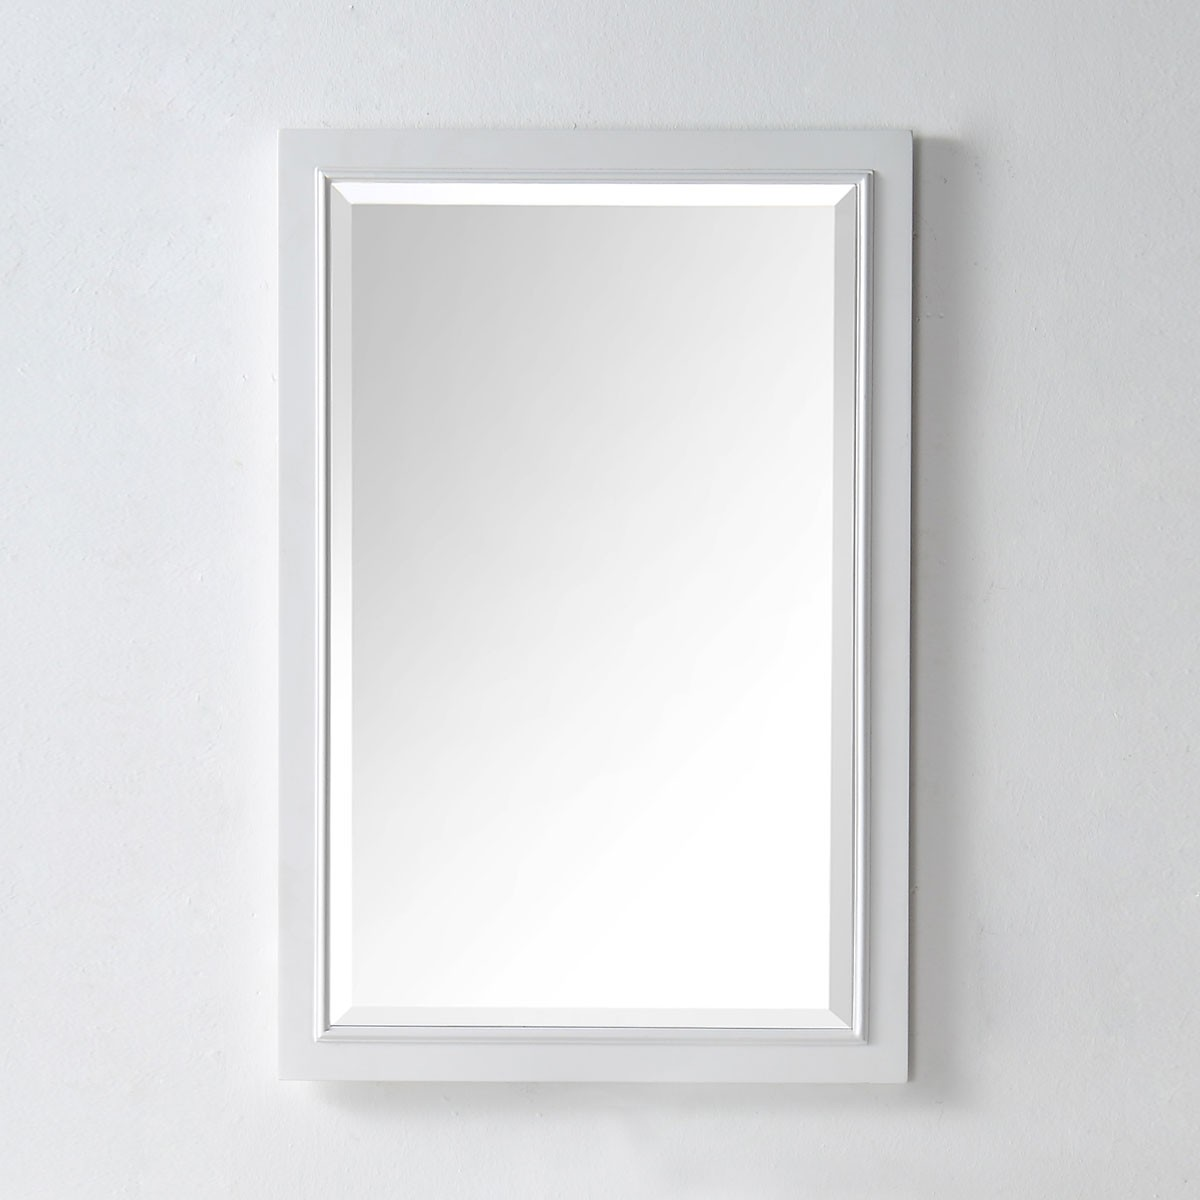 20 x 30 In Mirror with White Frame (DK-5000-WM) | Decoraport USA